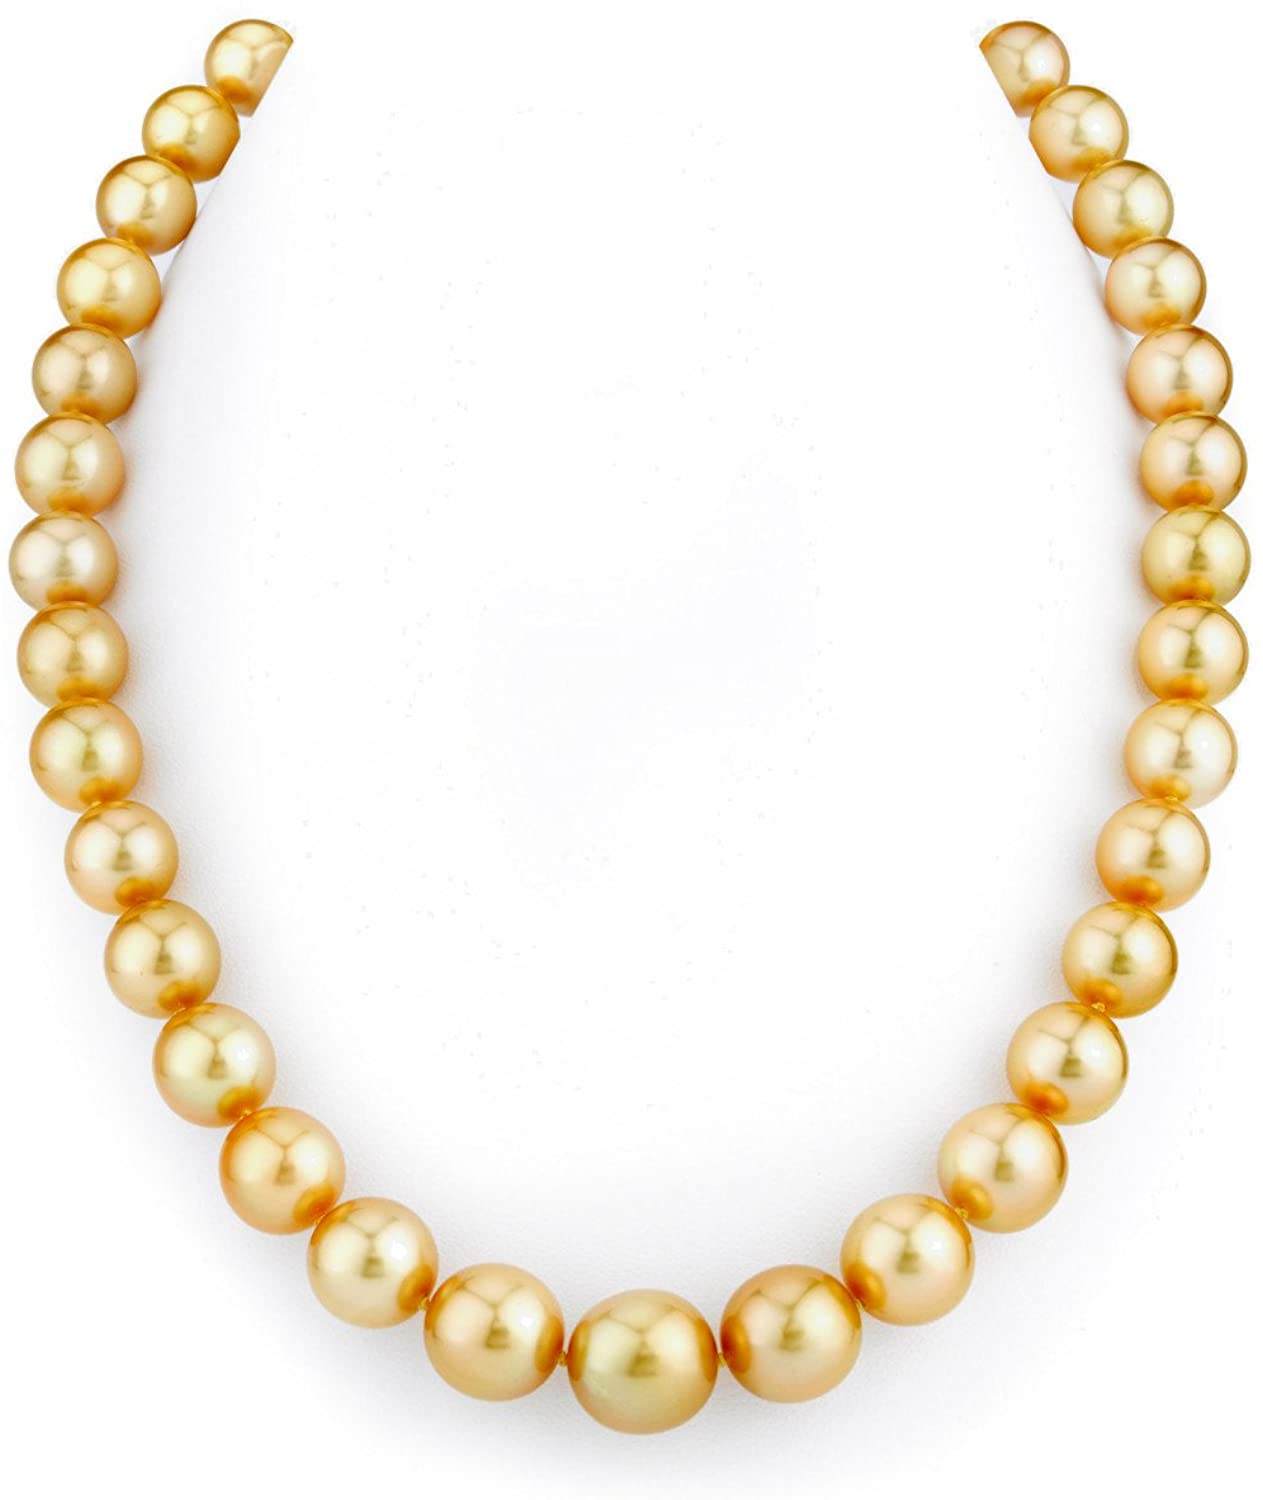 THE PEARL SOURCE 14K Gold 10-13mm AAAA Quality Round Genuine Ultimate Dark Golden South Sea Cultured Pearl Necklace in 17